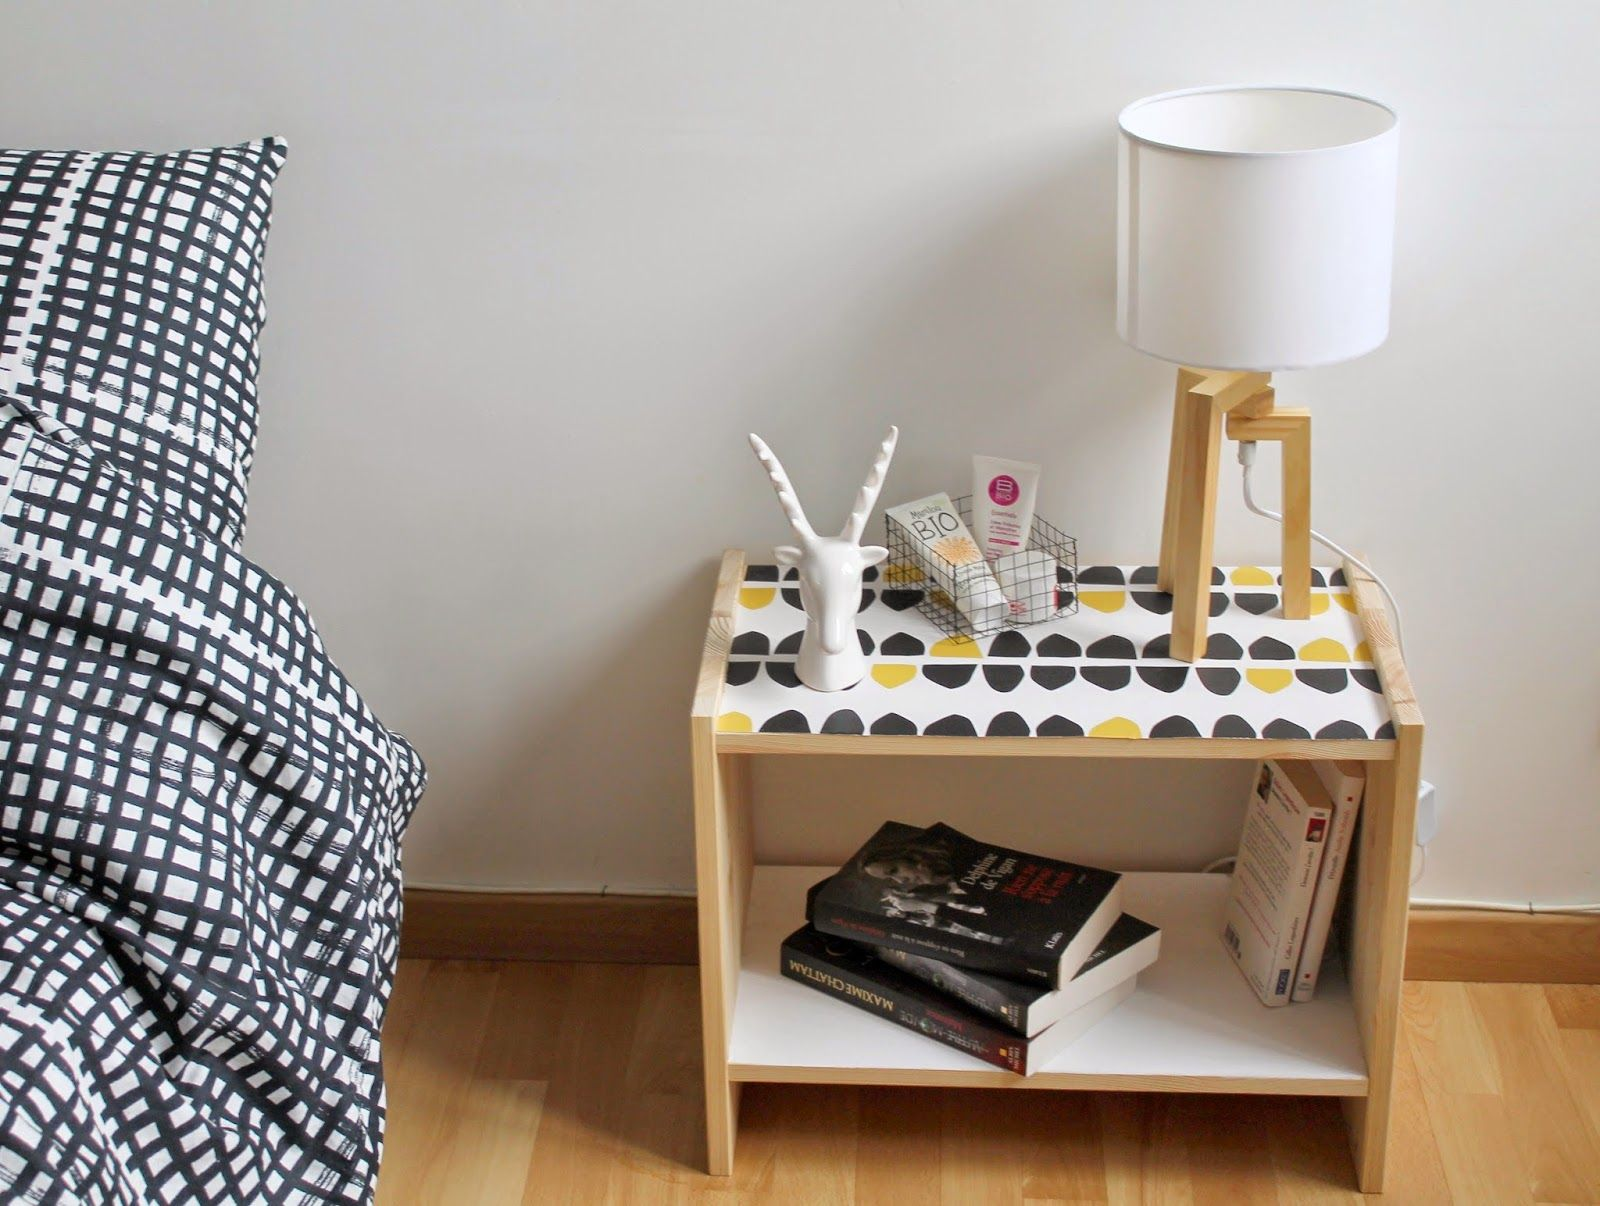 Le Bazar D Alison Blog Mode D Une Lyonnaise Diy Customiser La Table De Chevet Rast Table De Chevet Table De Chevet Ikea Mobilier De Salon